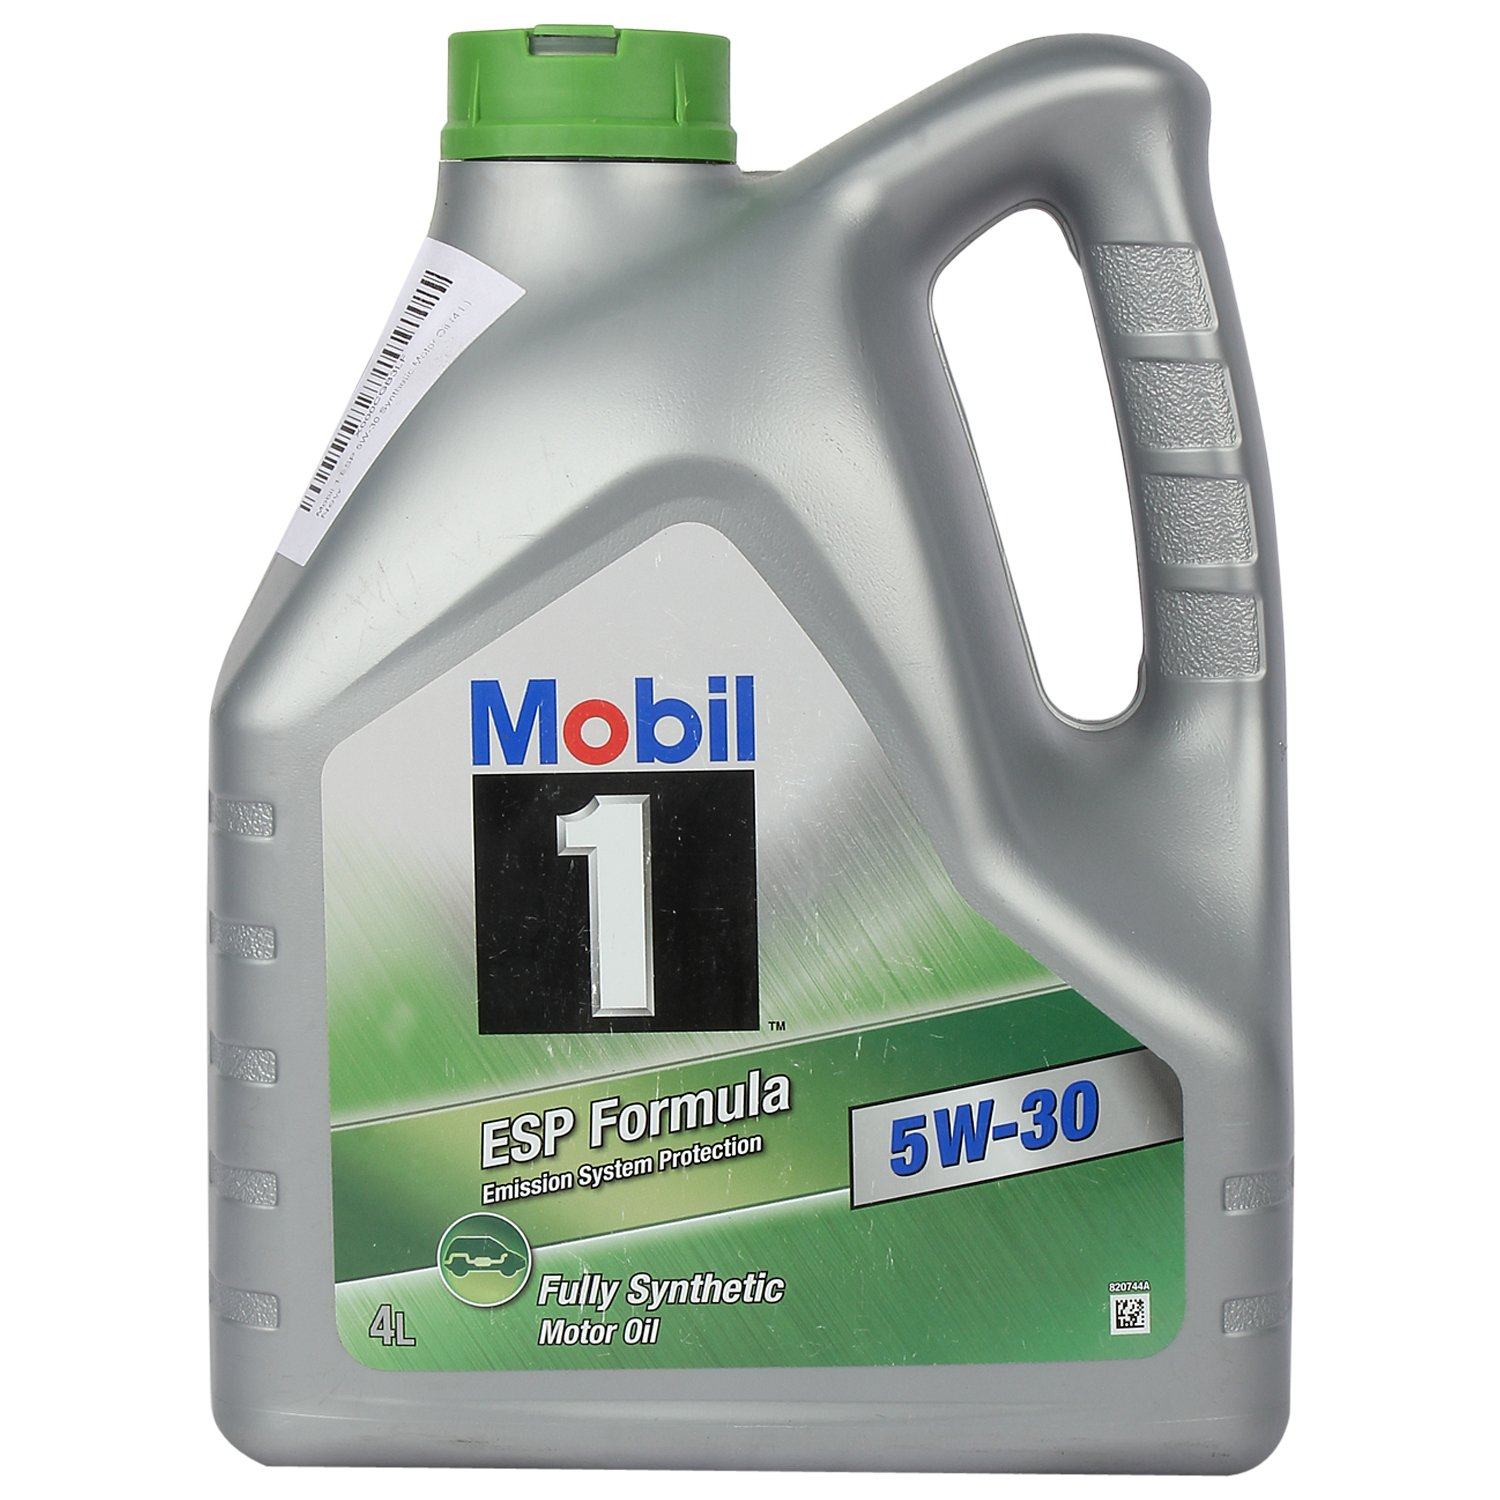 87 Mobil 1 Vs Liqui Moly Synthetic Motor Oil Review 40